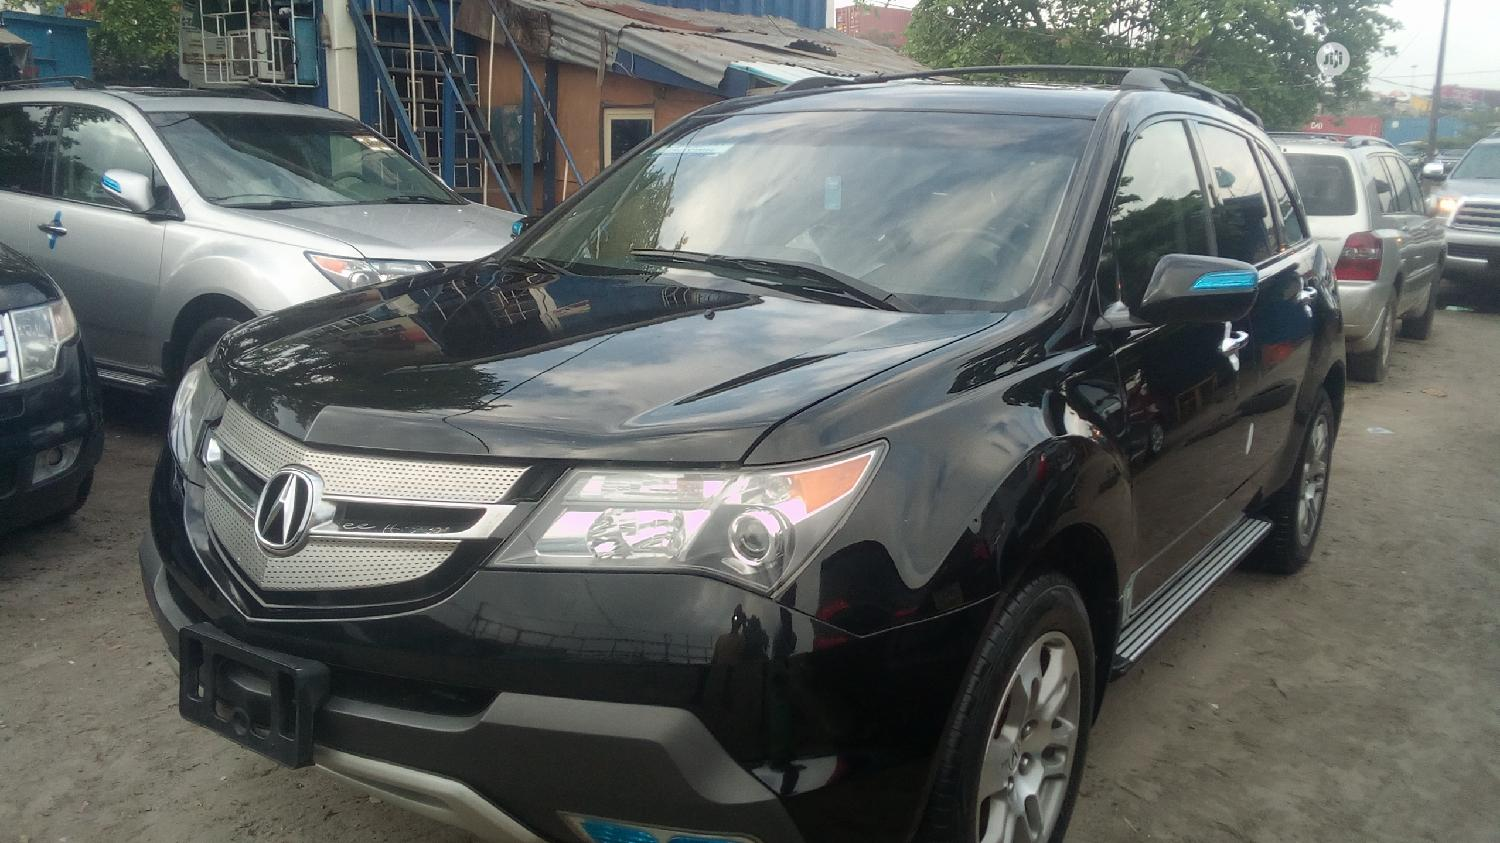 Acura Mdx 2009 Black In Apapa Cars James Motors Jiji Ng For Sale In Apapa Buy Cars From James Motors On Jiji Ng